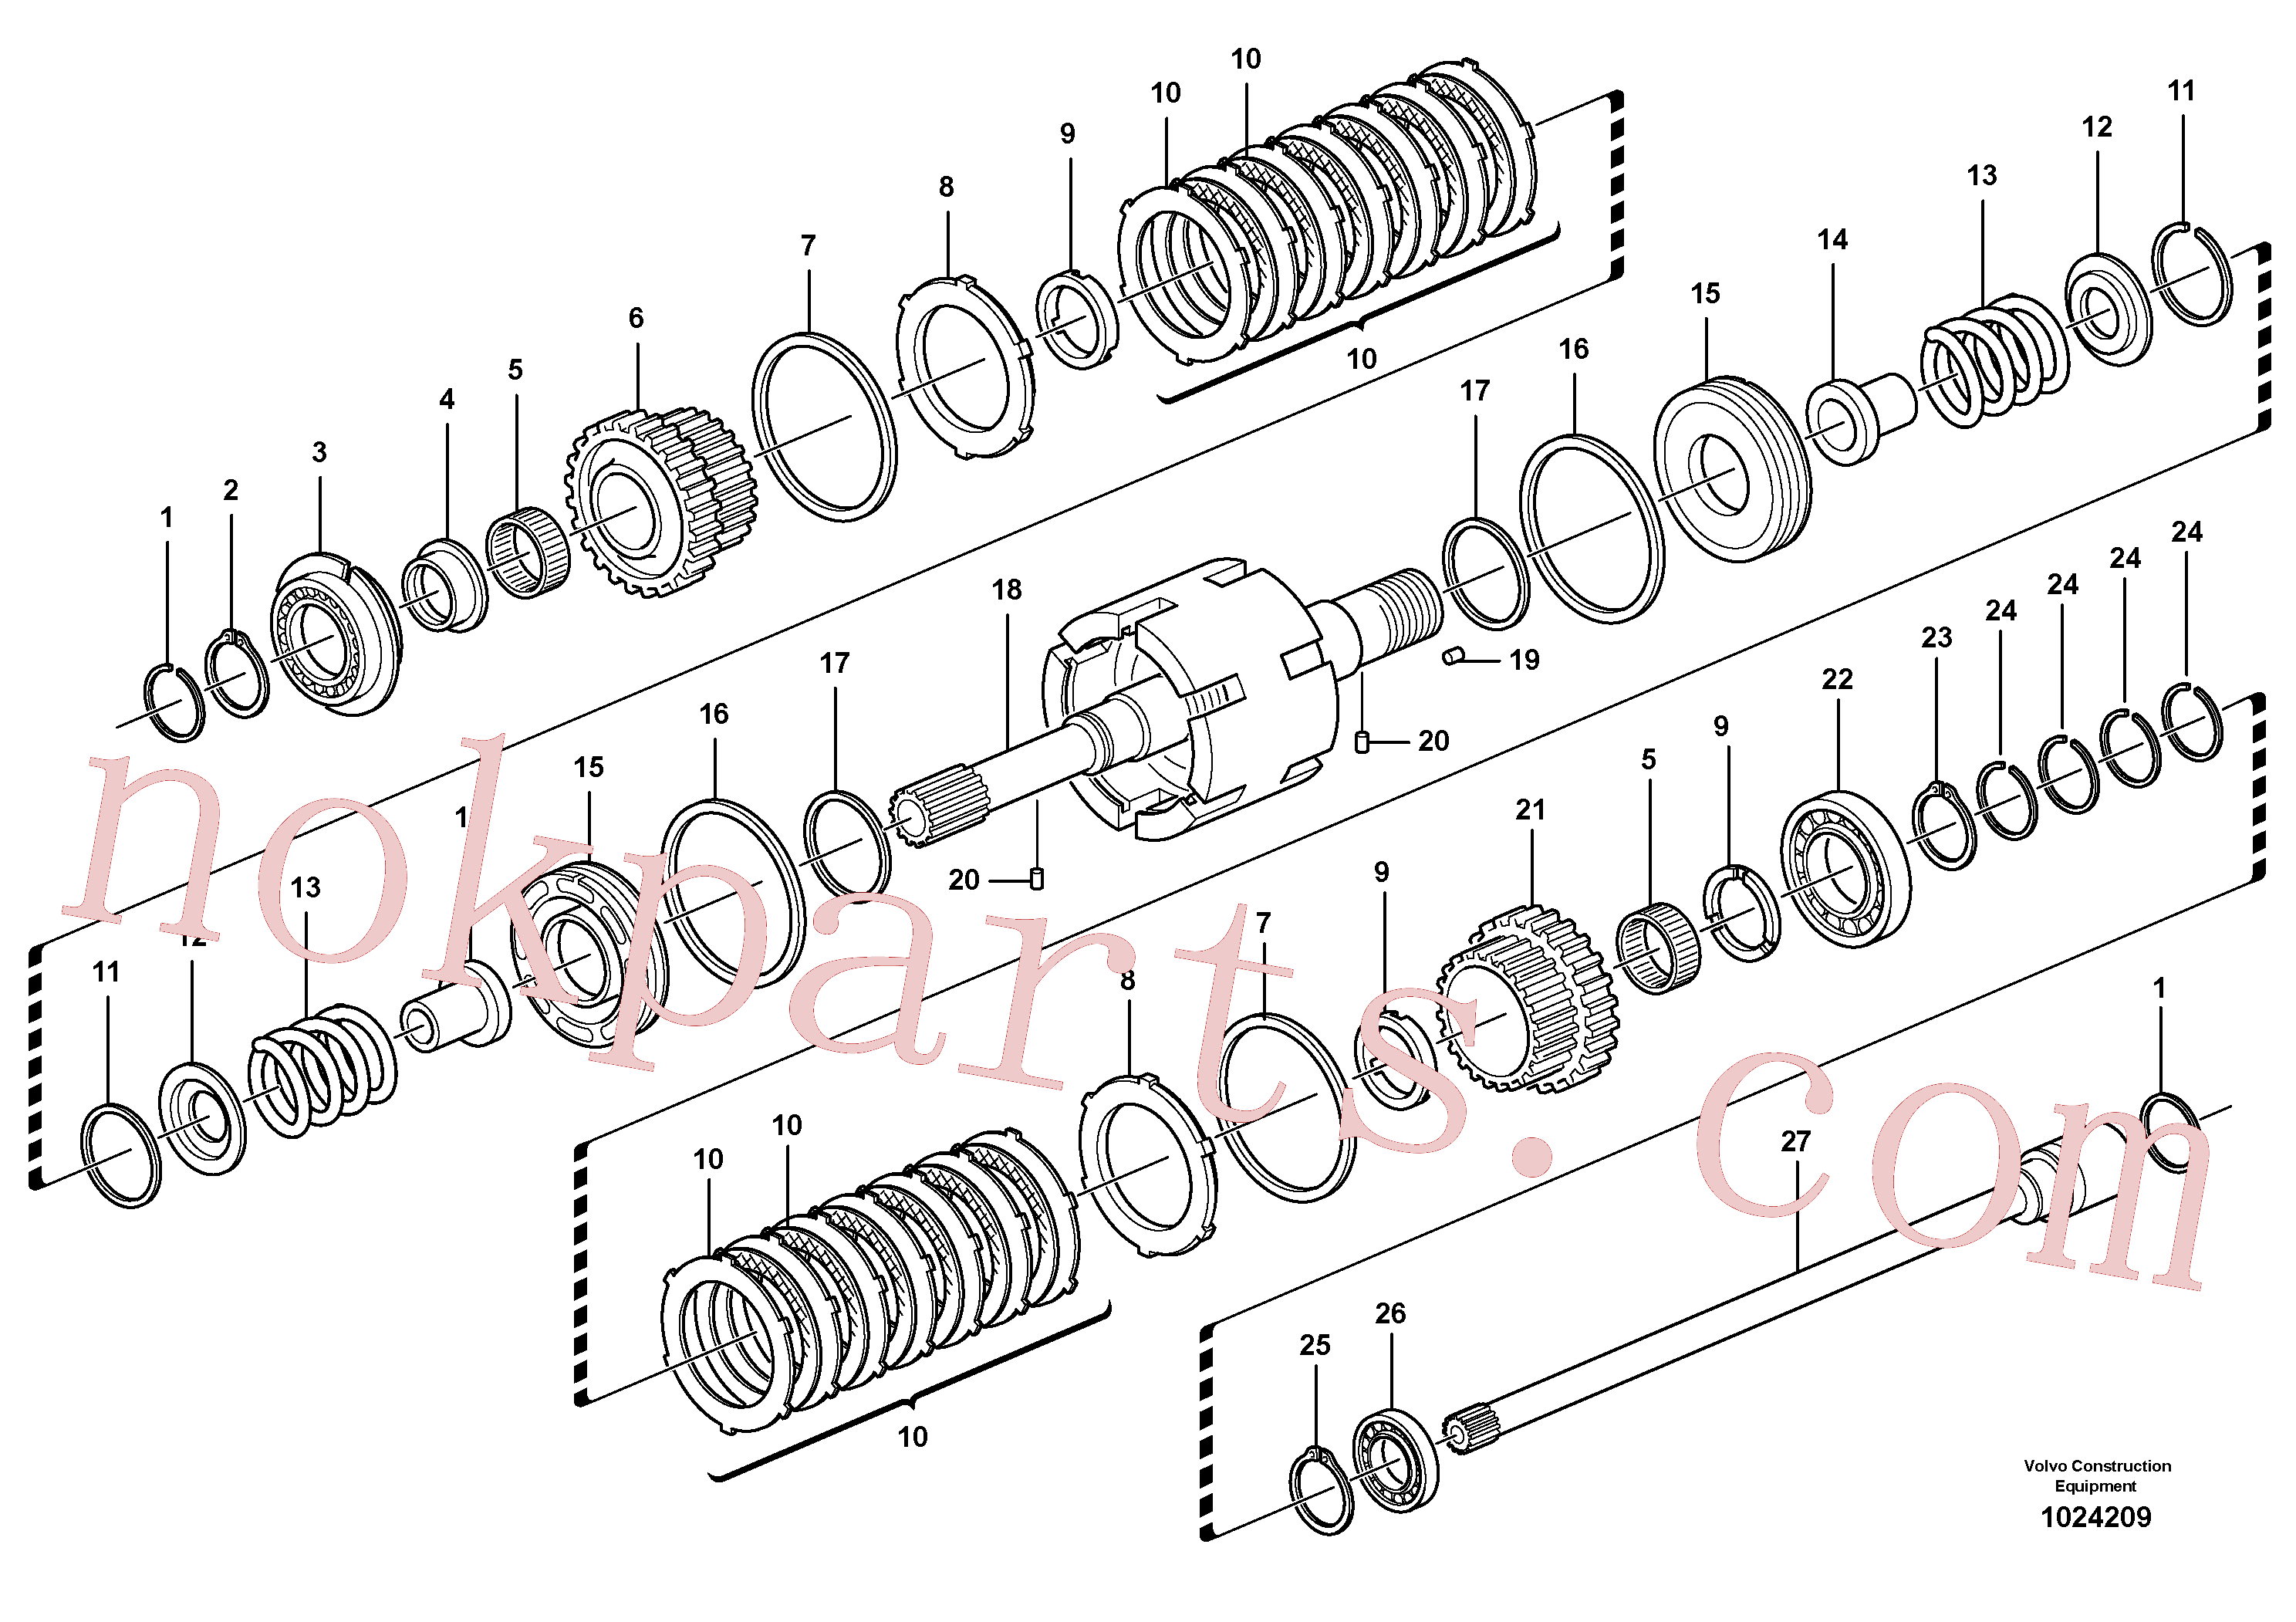 VOE11712469 for Volvo Clutch shaft forward/reverse(1024209 assembly)